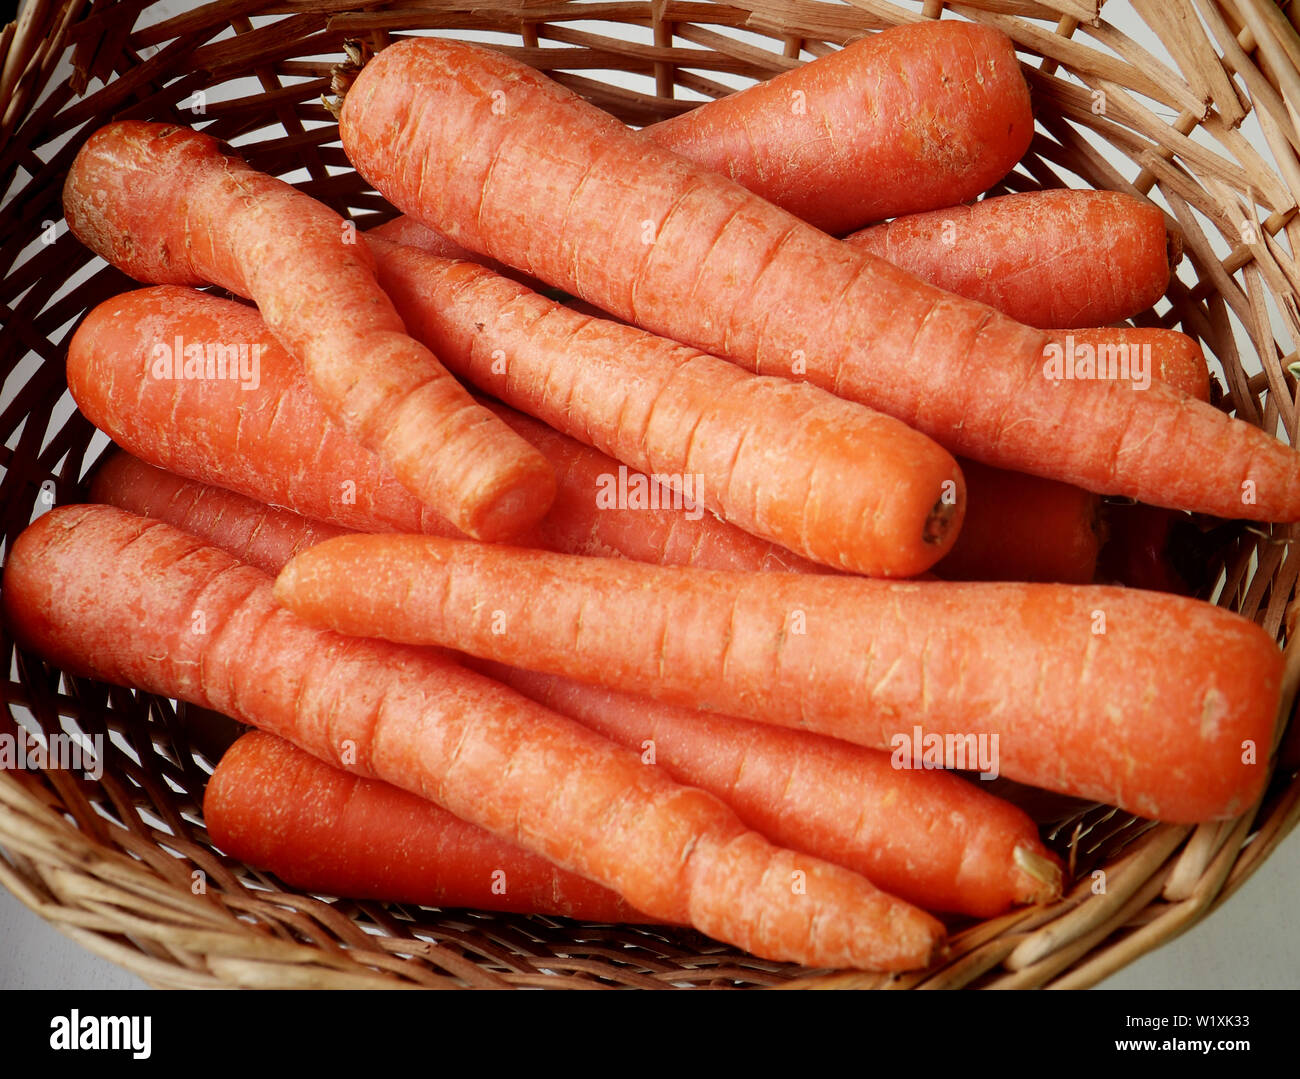 Carrots with bright color in a basket, healthy ingredients in the kitchen Stock Photo